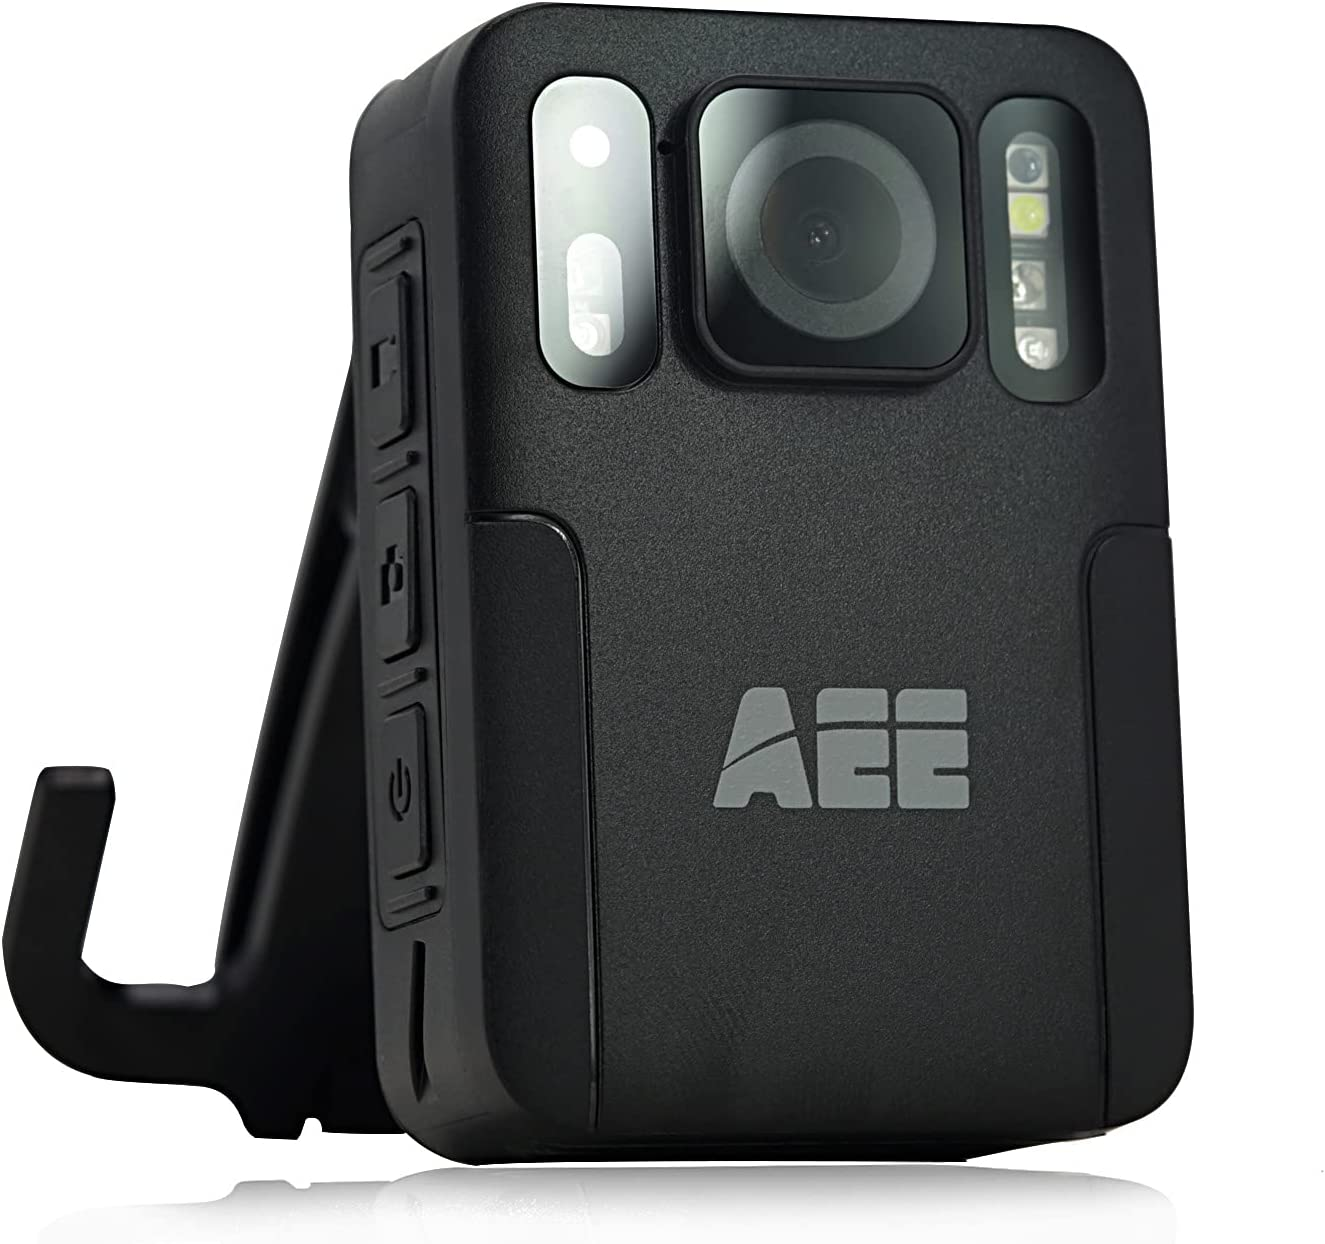 AEE M16 Body Worn Camera with Audio Recording Wearable 1080P HD Police Body Mounted Camera for Law Enforcement, Max 128GB, 48MP Lightweight and Portable Body Cameras with Compact Design